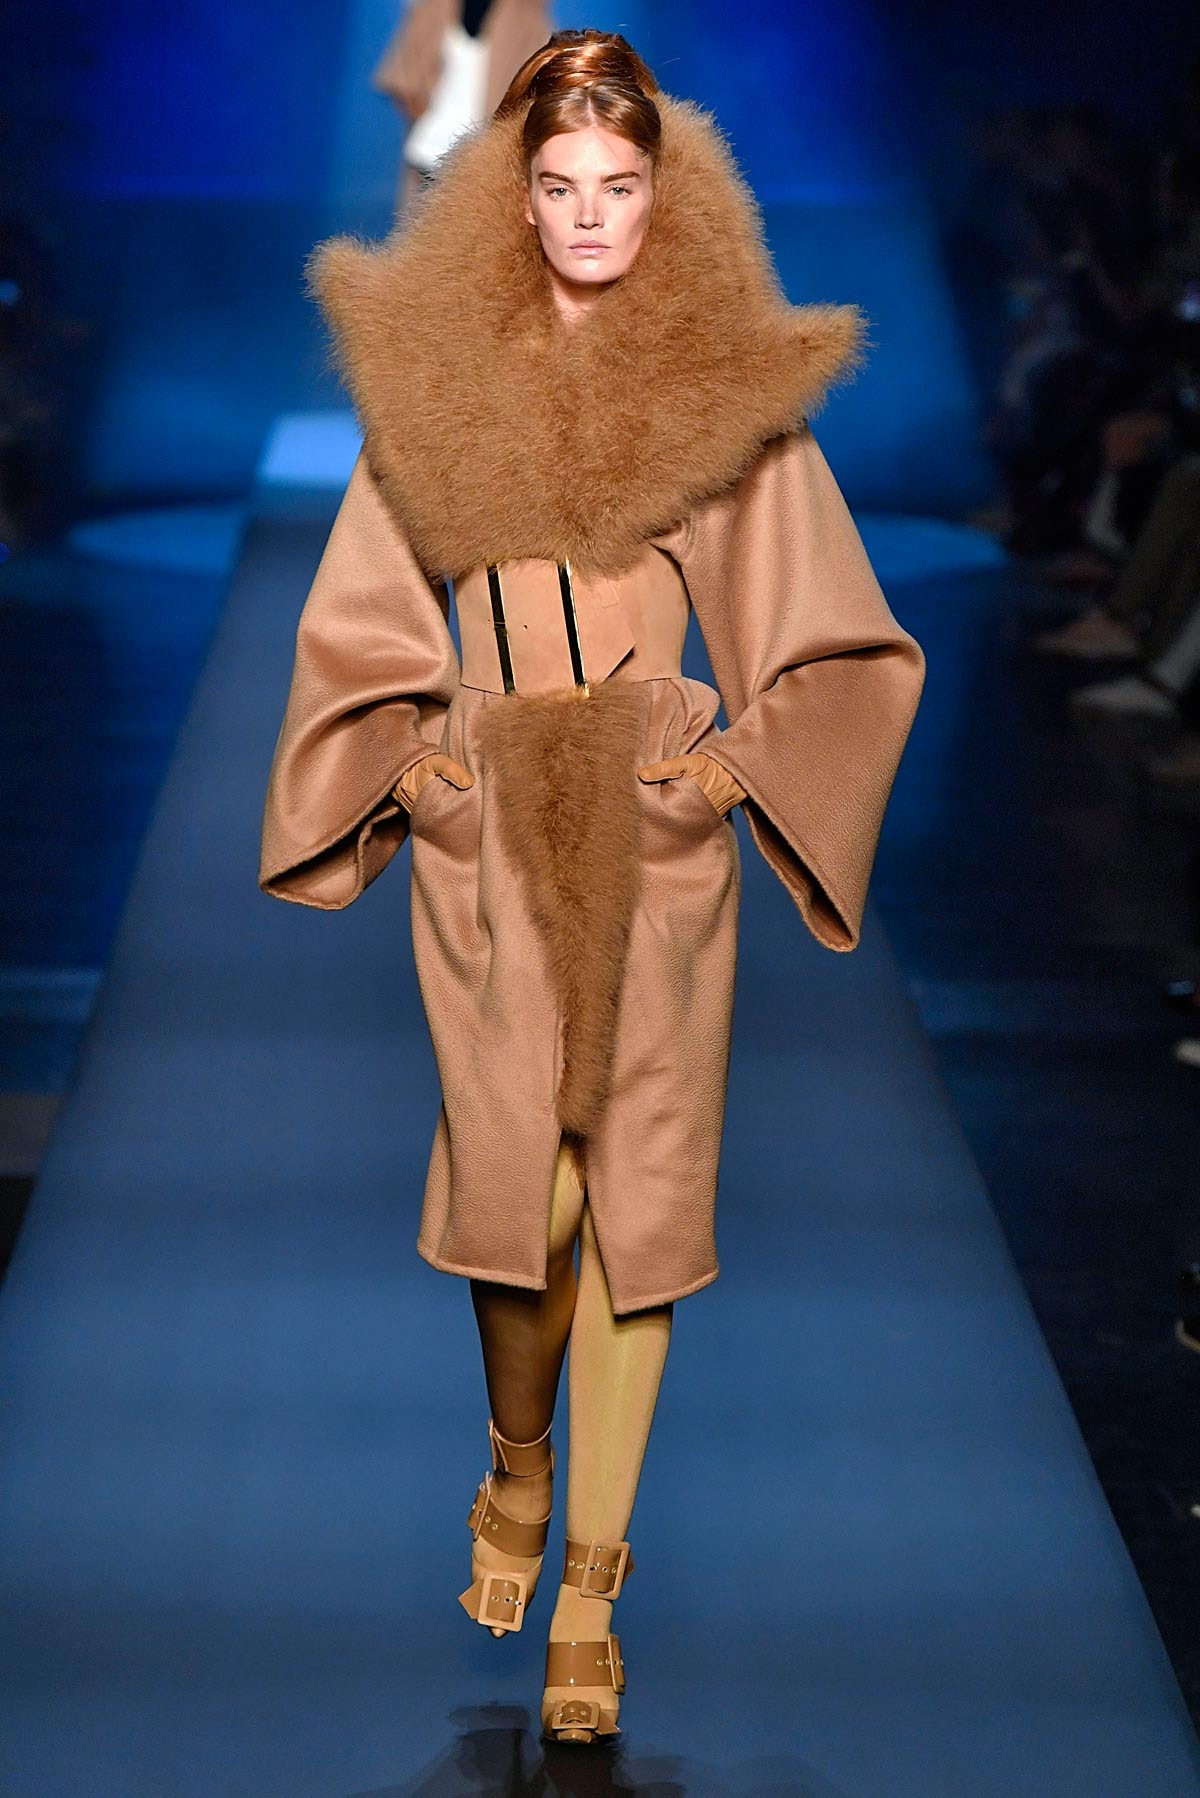 Fashion icon Jean Paul Gaultier says he could go back on fur ban